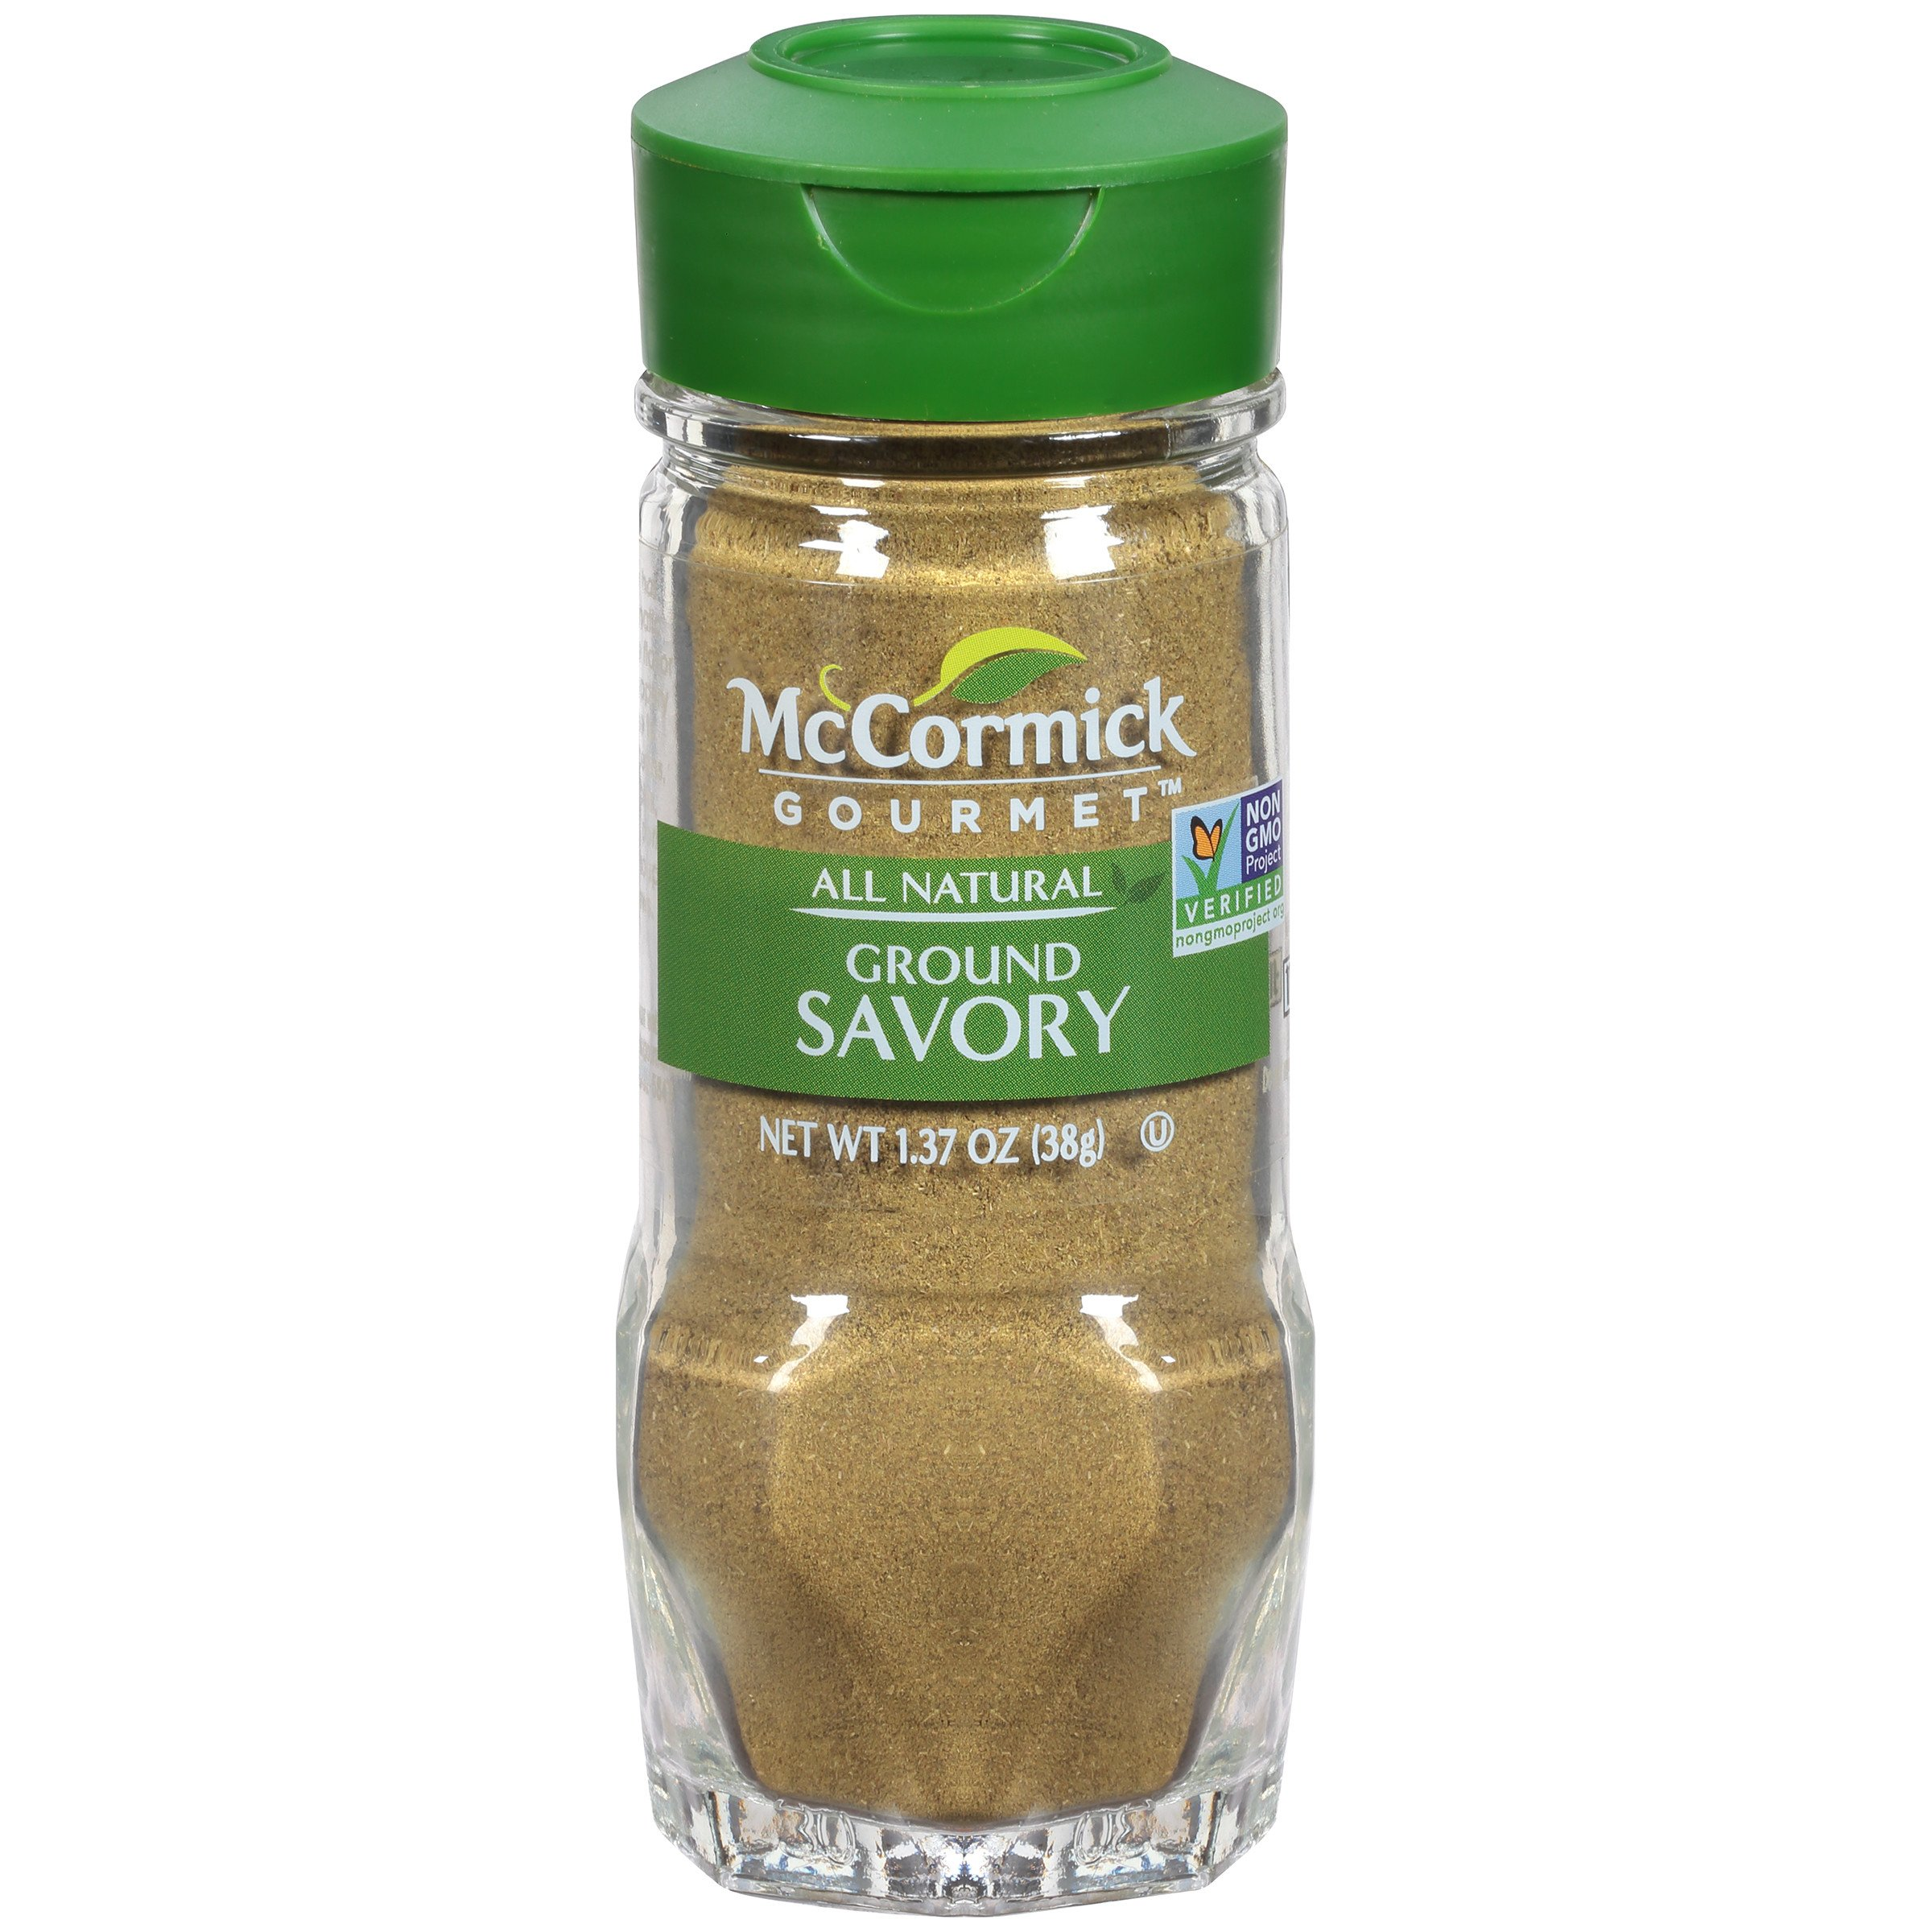 McCormick Gourmet All Natural Ground Savory, 1.37 oz